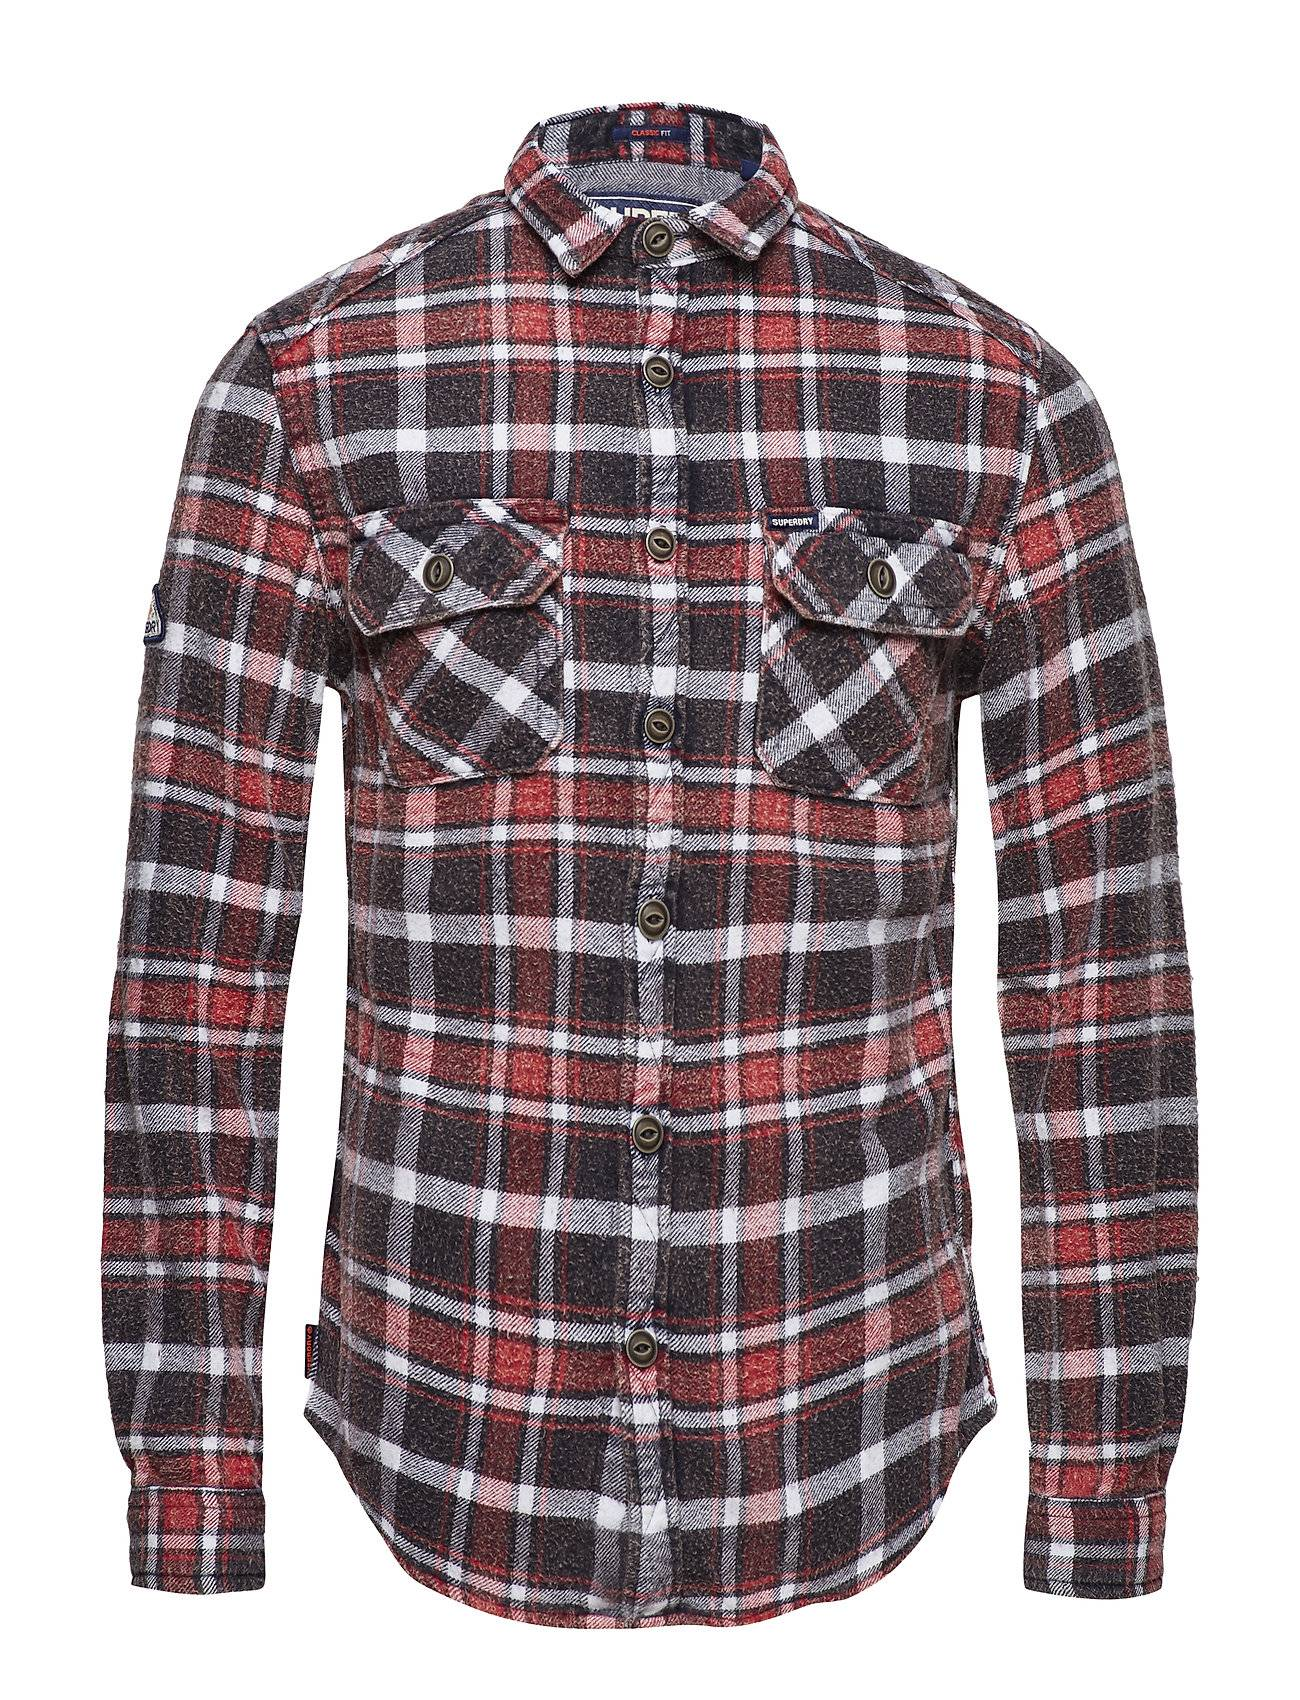 Superdry Merchant Milled Shirt Paita Rento Casual Punainen Superdry